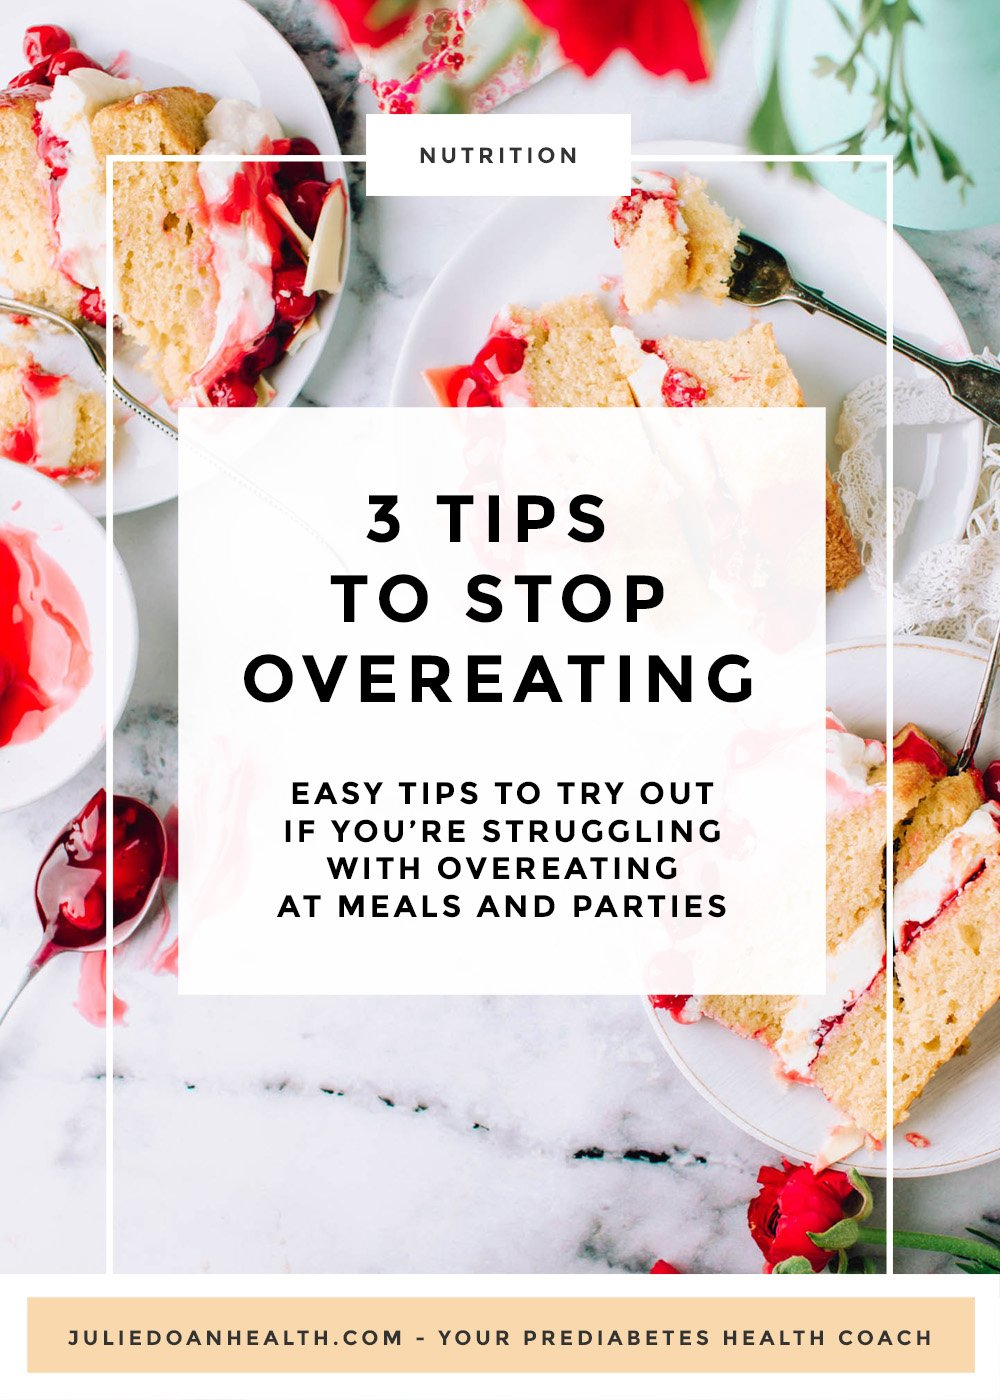 tips to try out if you're struggling with overeating at meals and parties